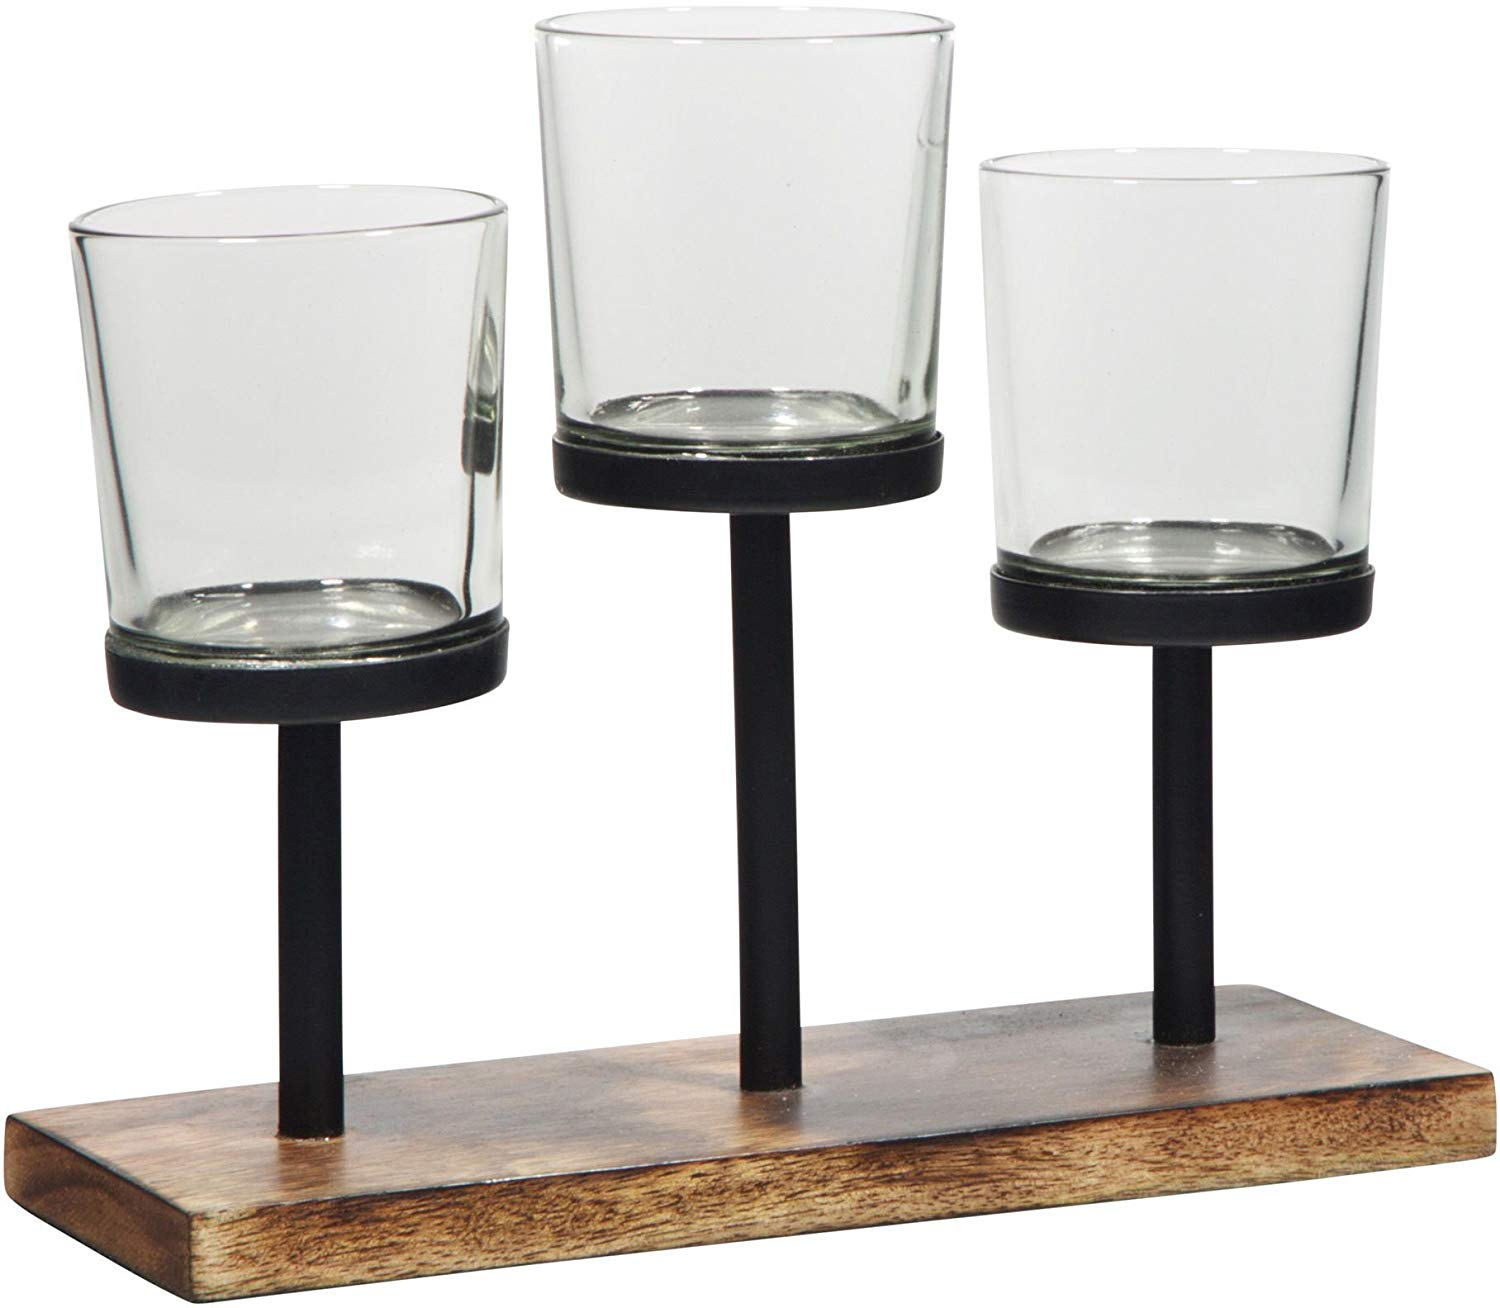 Rustic Farmhouse Style Candle Holders Under $25!